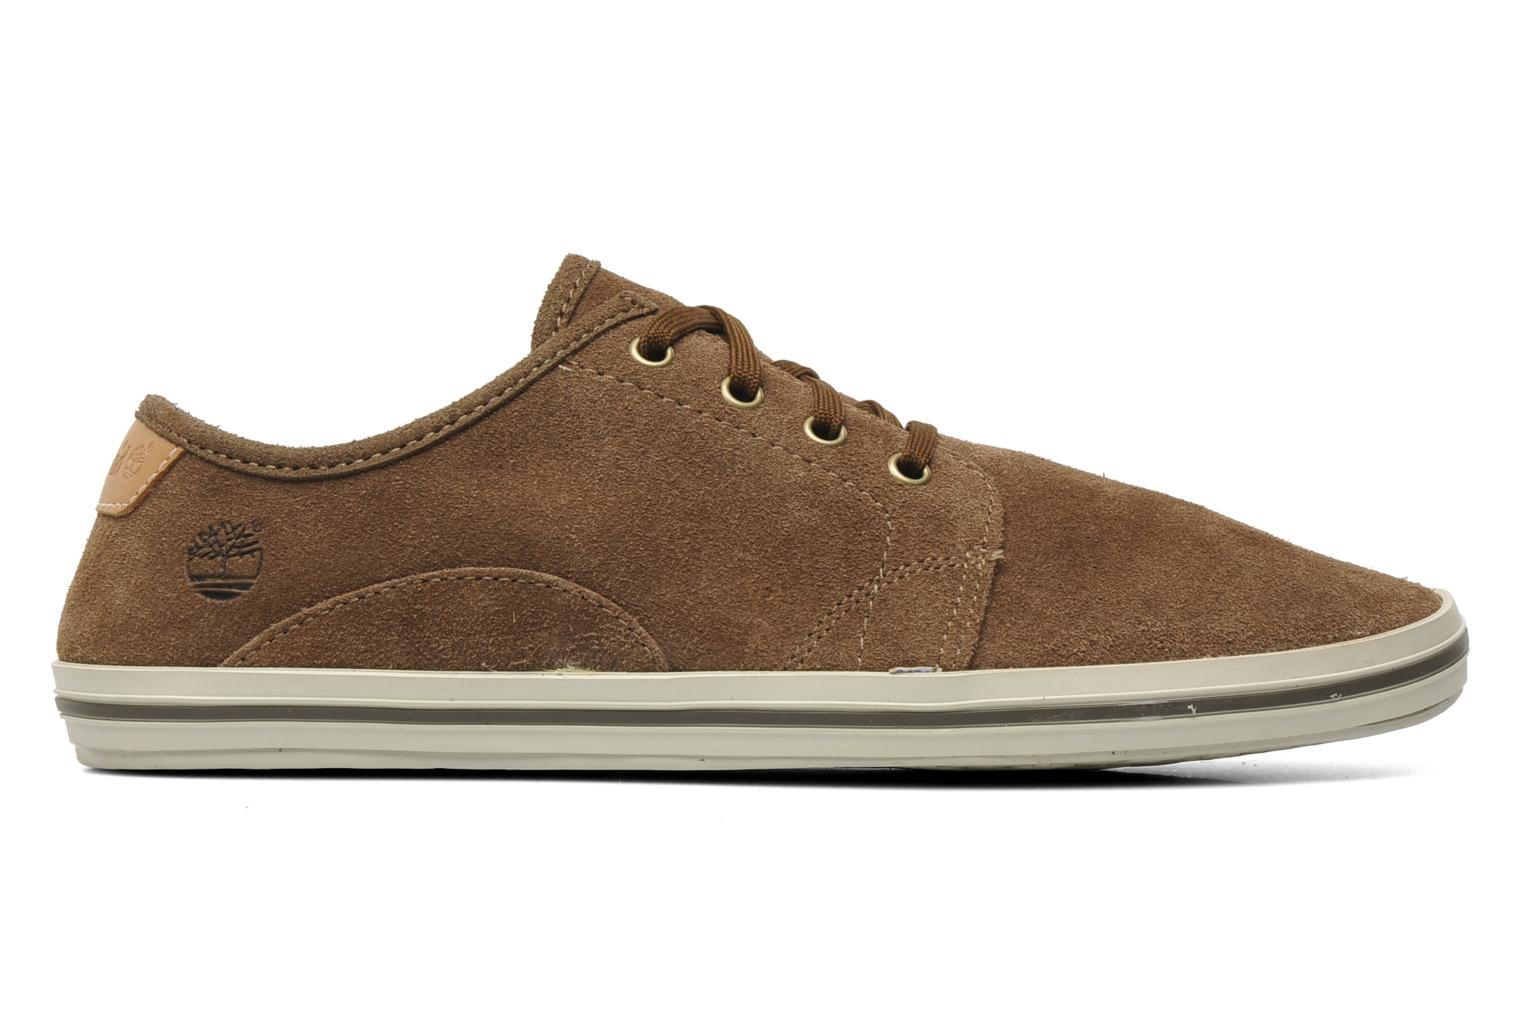 Baskets Timberland Earthkeepers Casco Bay Leather Ox M Marron vue derrière